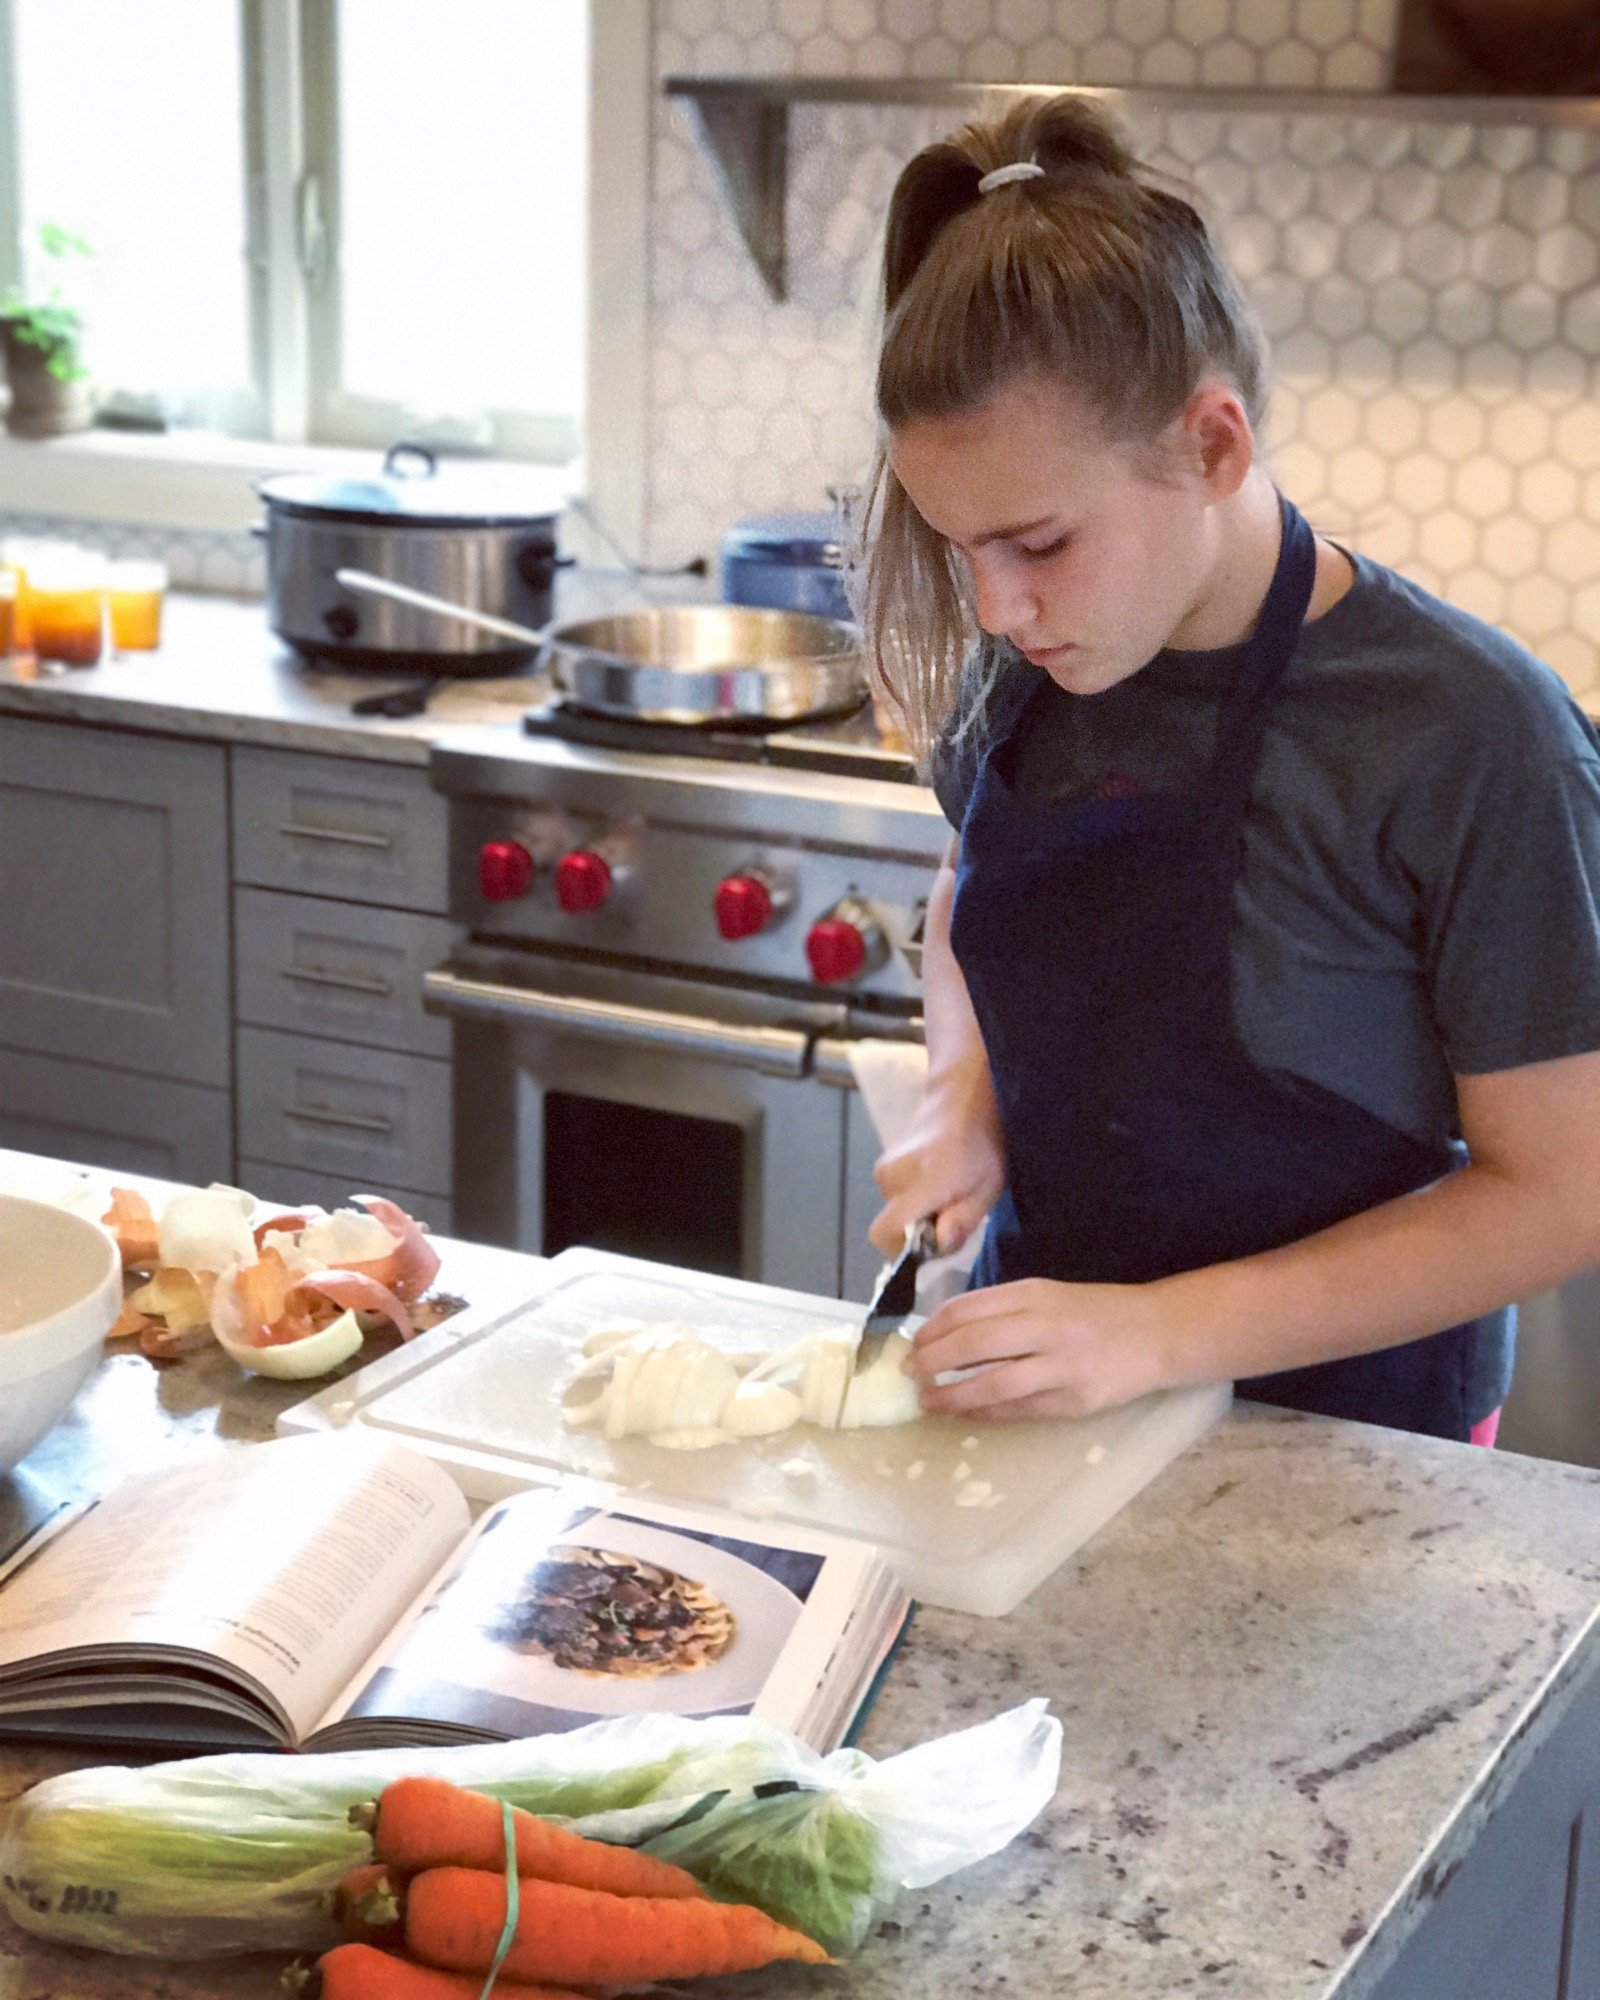 What Is Good To Cook For Dinner: 10 Dinners Your Middle Schooler Can Make For You This